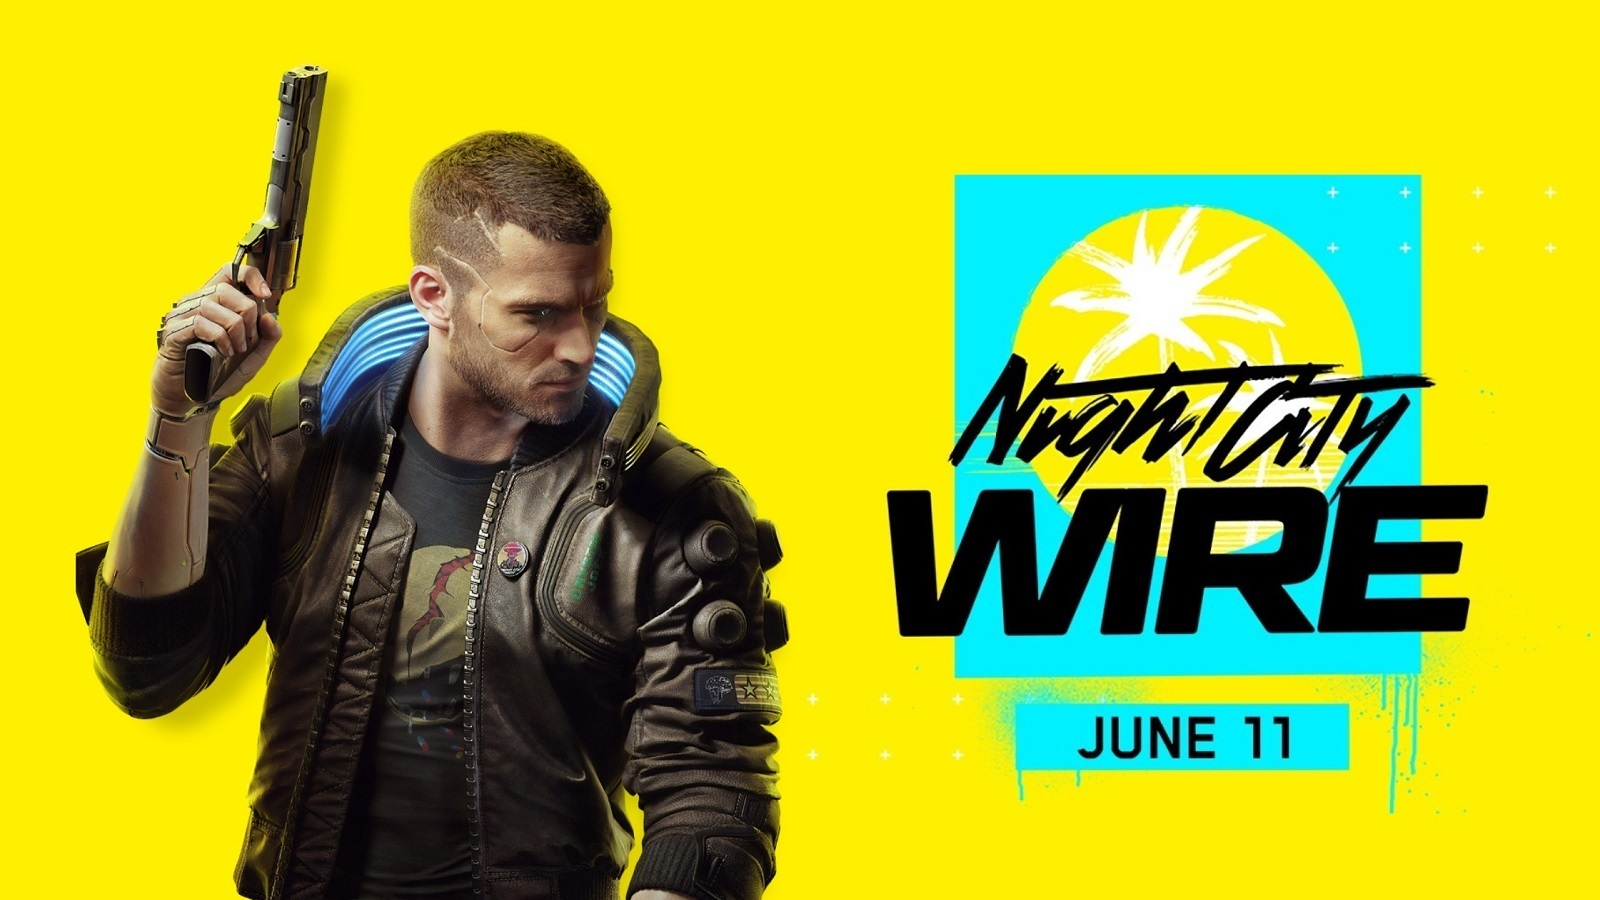 Cyberpunk 2077 Gameplay and Story Reveal at Night City Wire